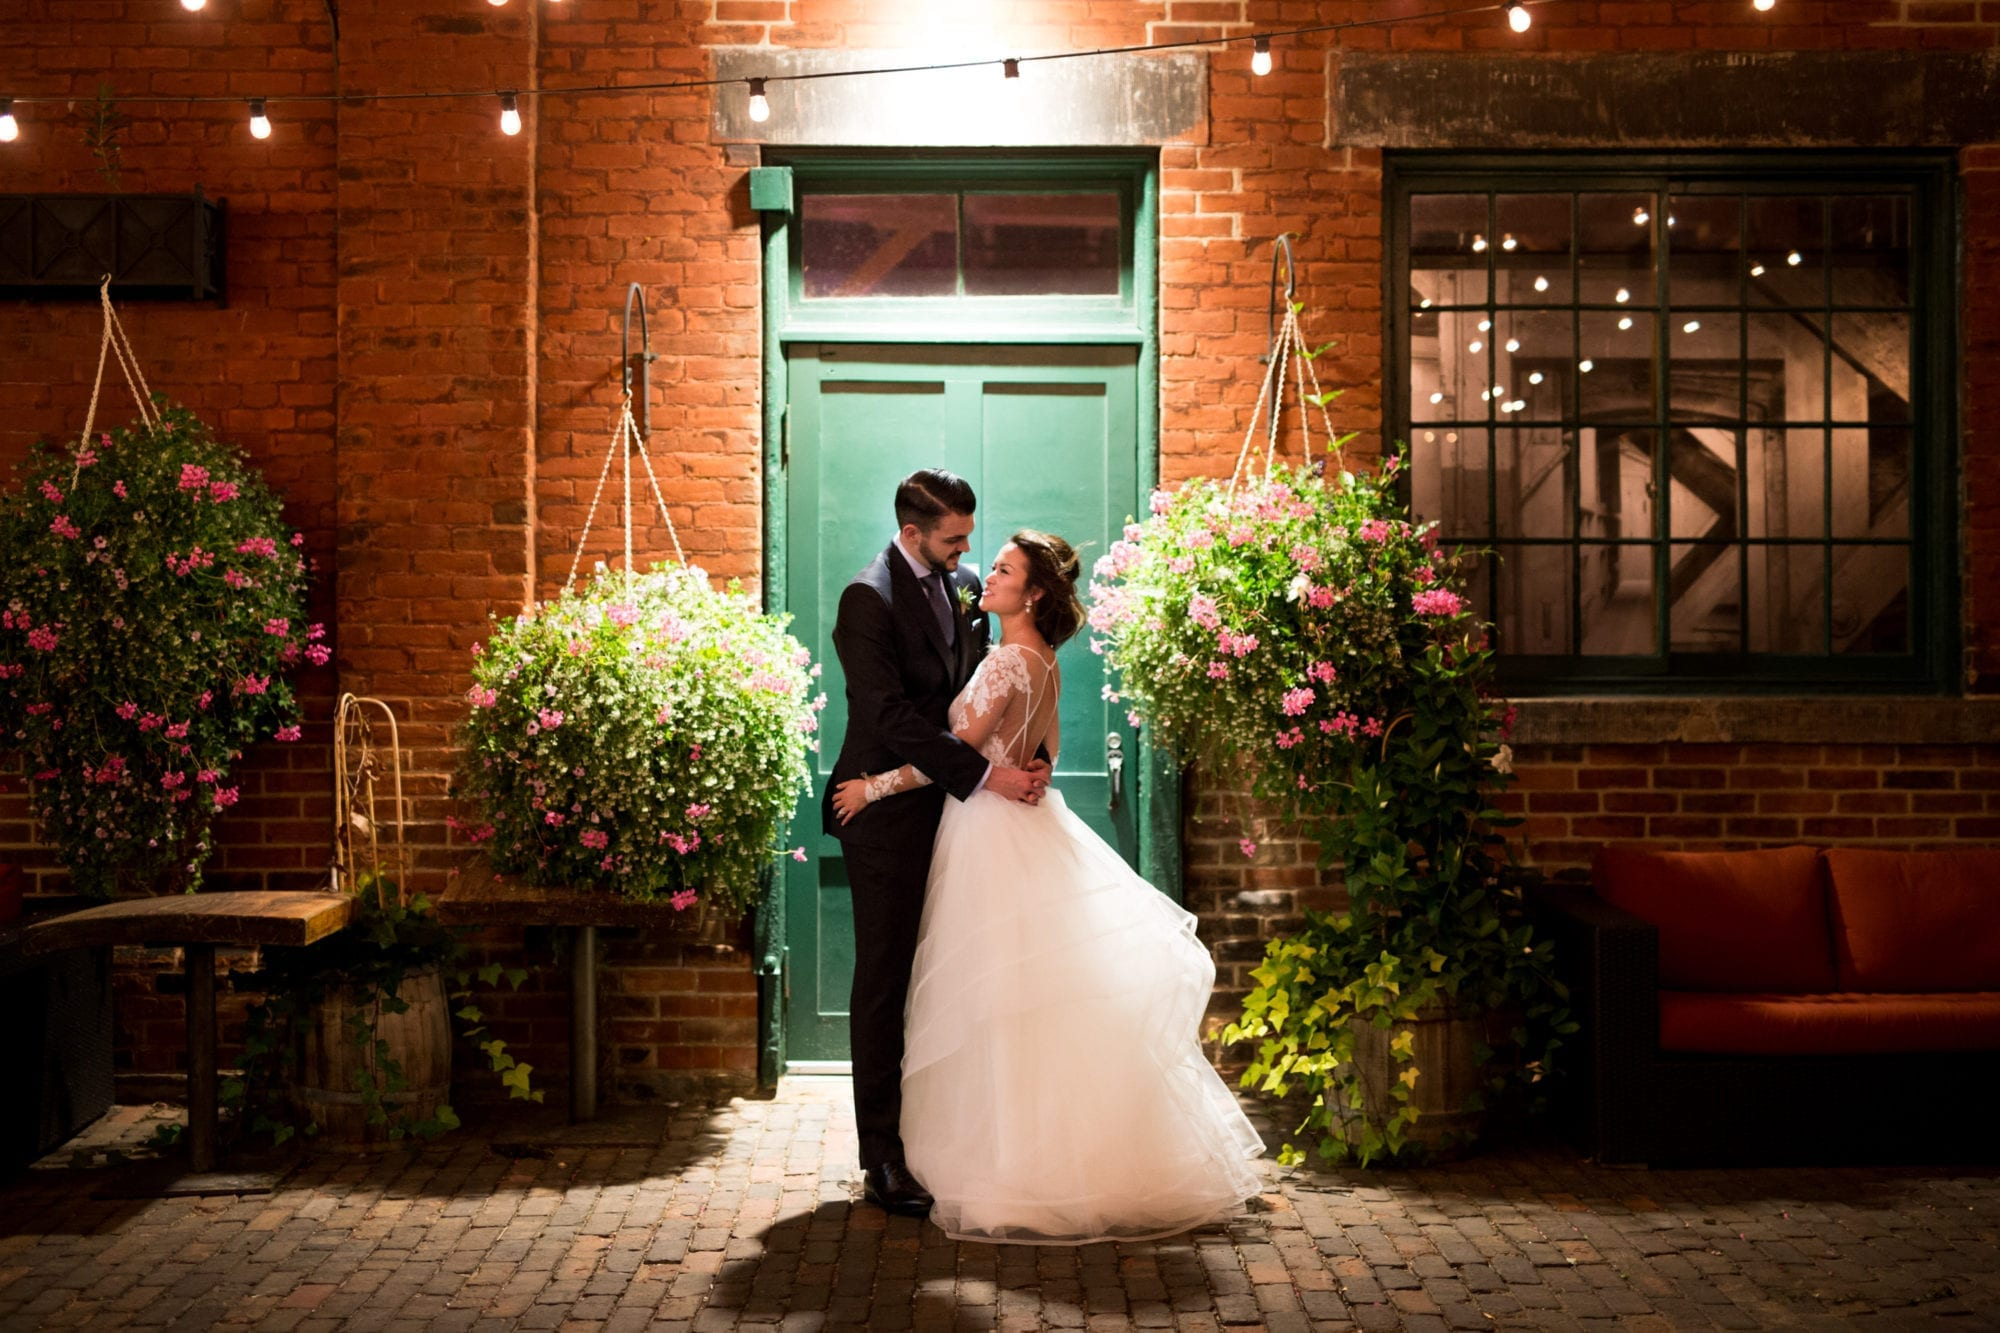 Bride Groom Night Shot Brick Wall Distillery District Archeo Bistro Toronto Wedding Zsuzsi Pal Photography